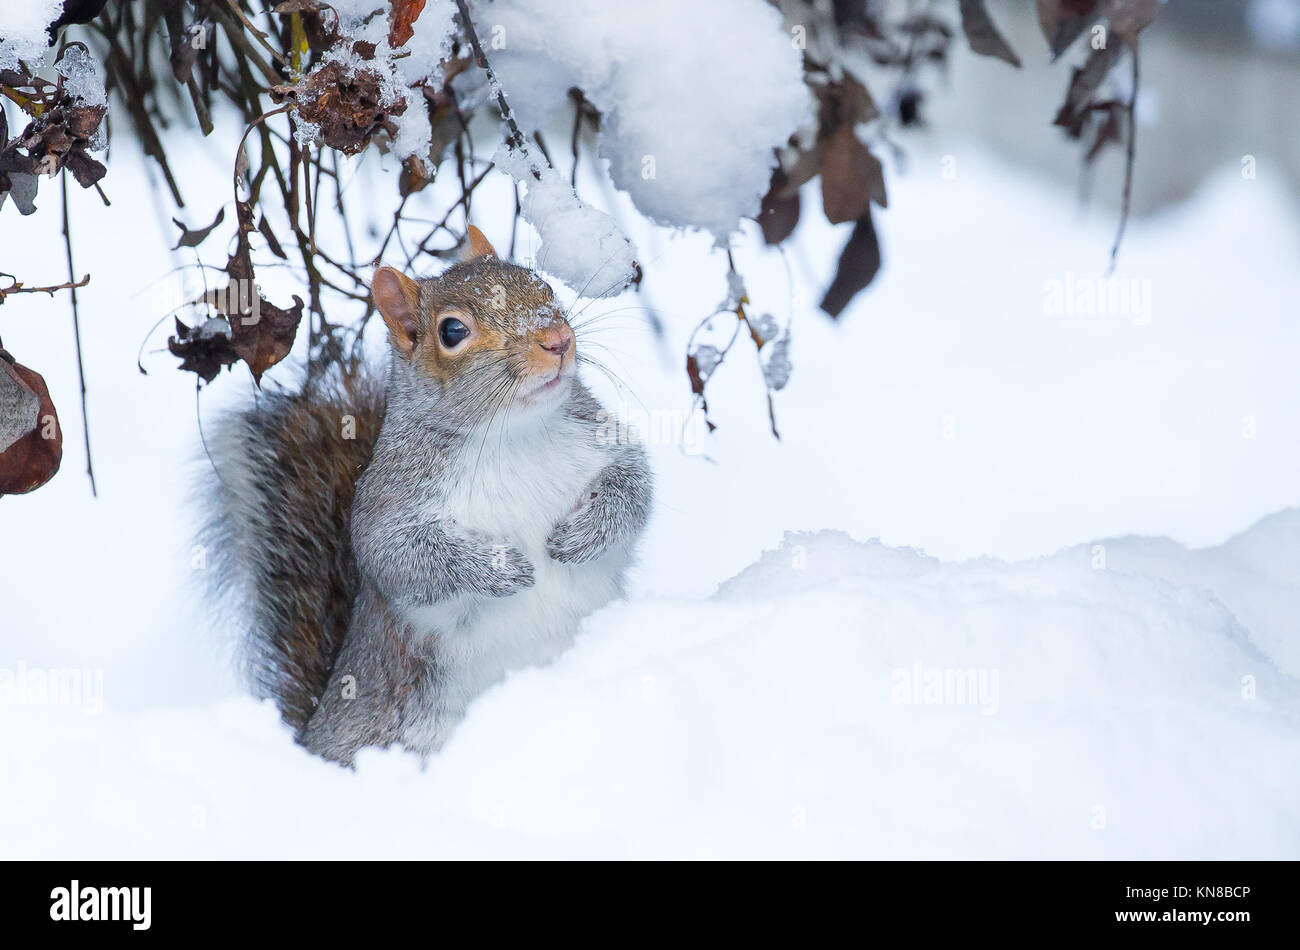 Kidderminster, UK. 11th December, 2017. UK weather: winter snow still causing disruption around Worcestershire and particularly for this confused wild grey squirrel (Sciurus carolinensis) sitting isolated in the middle of a UK garden snow drift. Credit: Lee Hudson/Alamy Live News Stock Photo